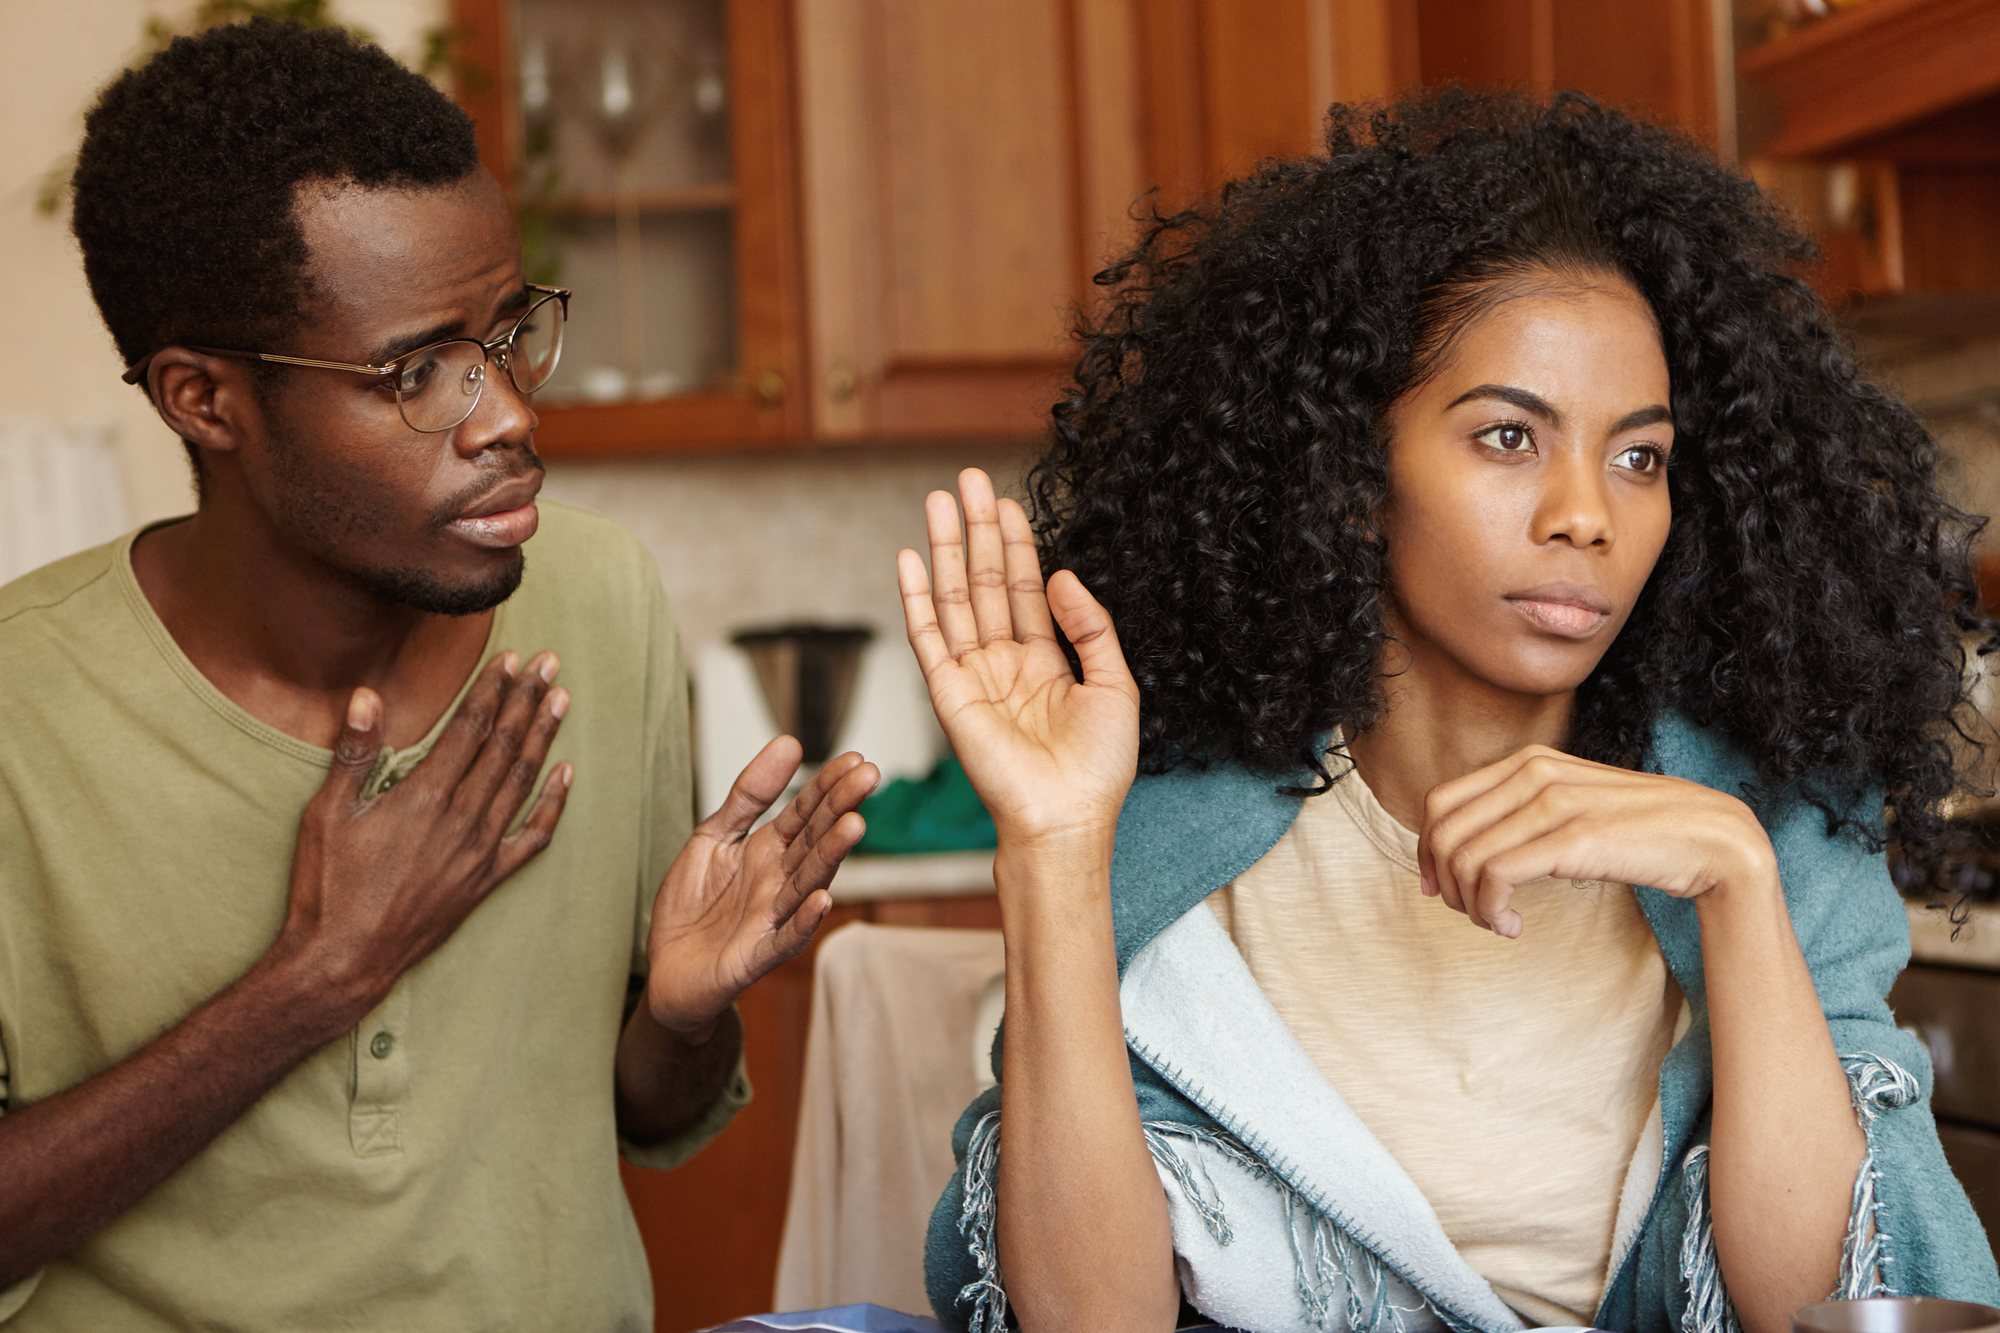 5 Warning Signs You Need Anger Management Help